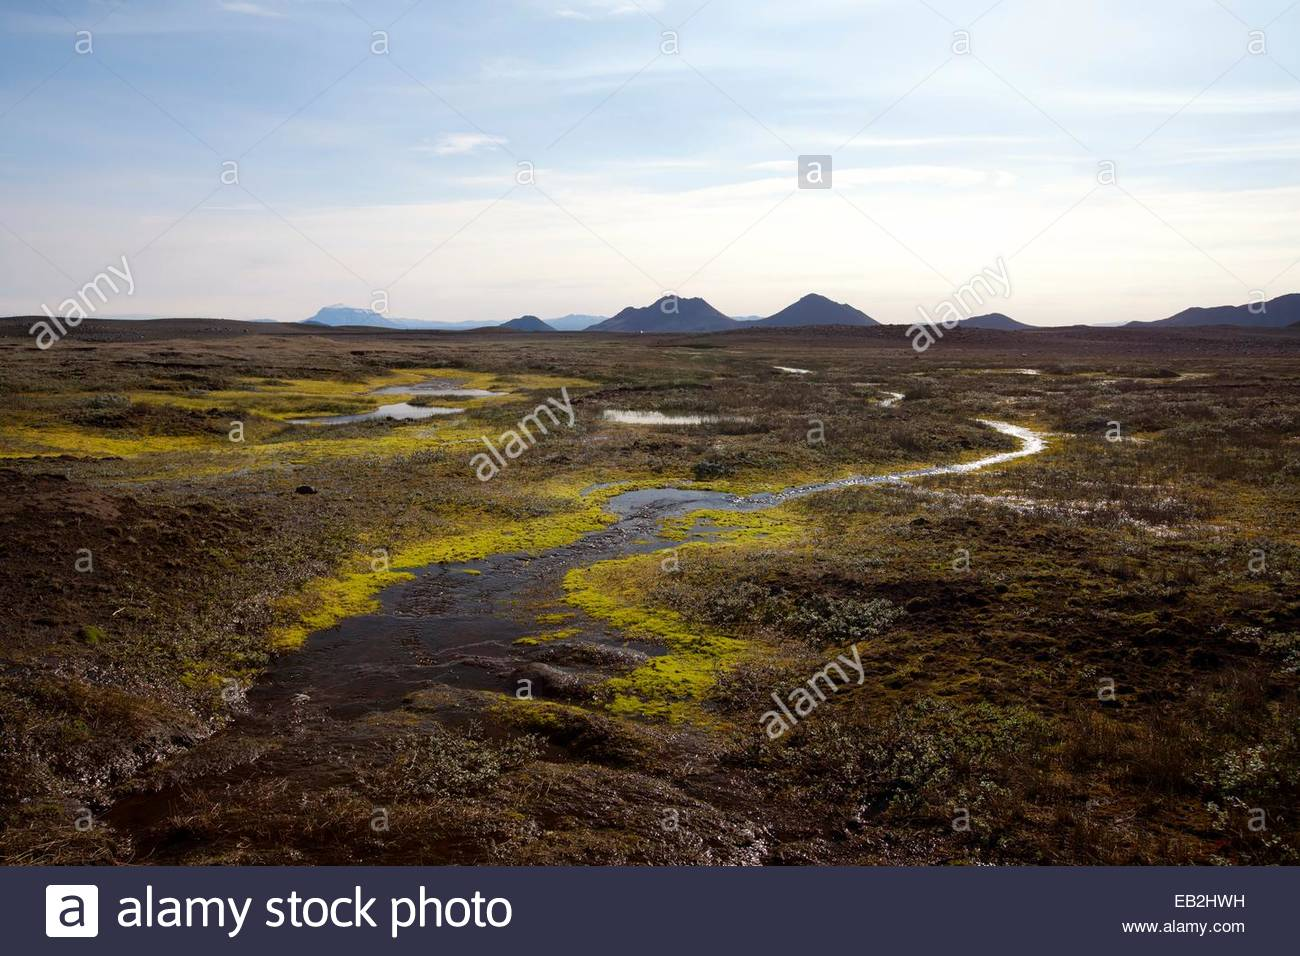 Otherworldly landscape in the Central Highlands. - Stock Image